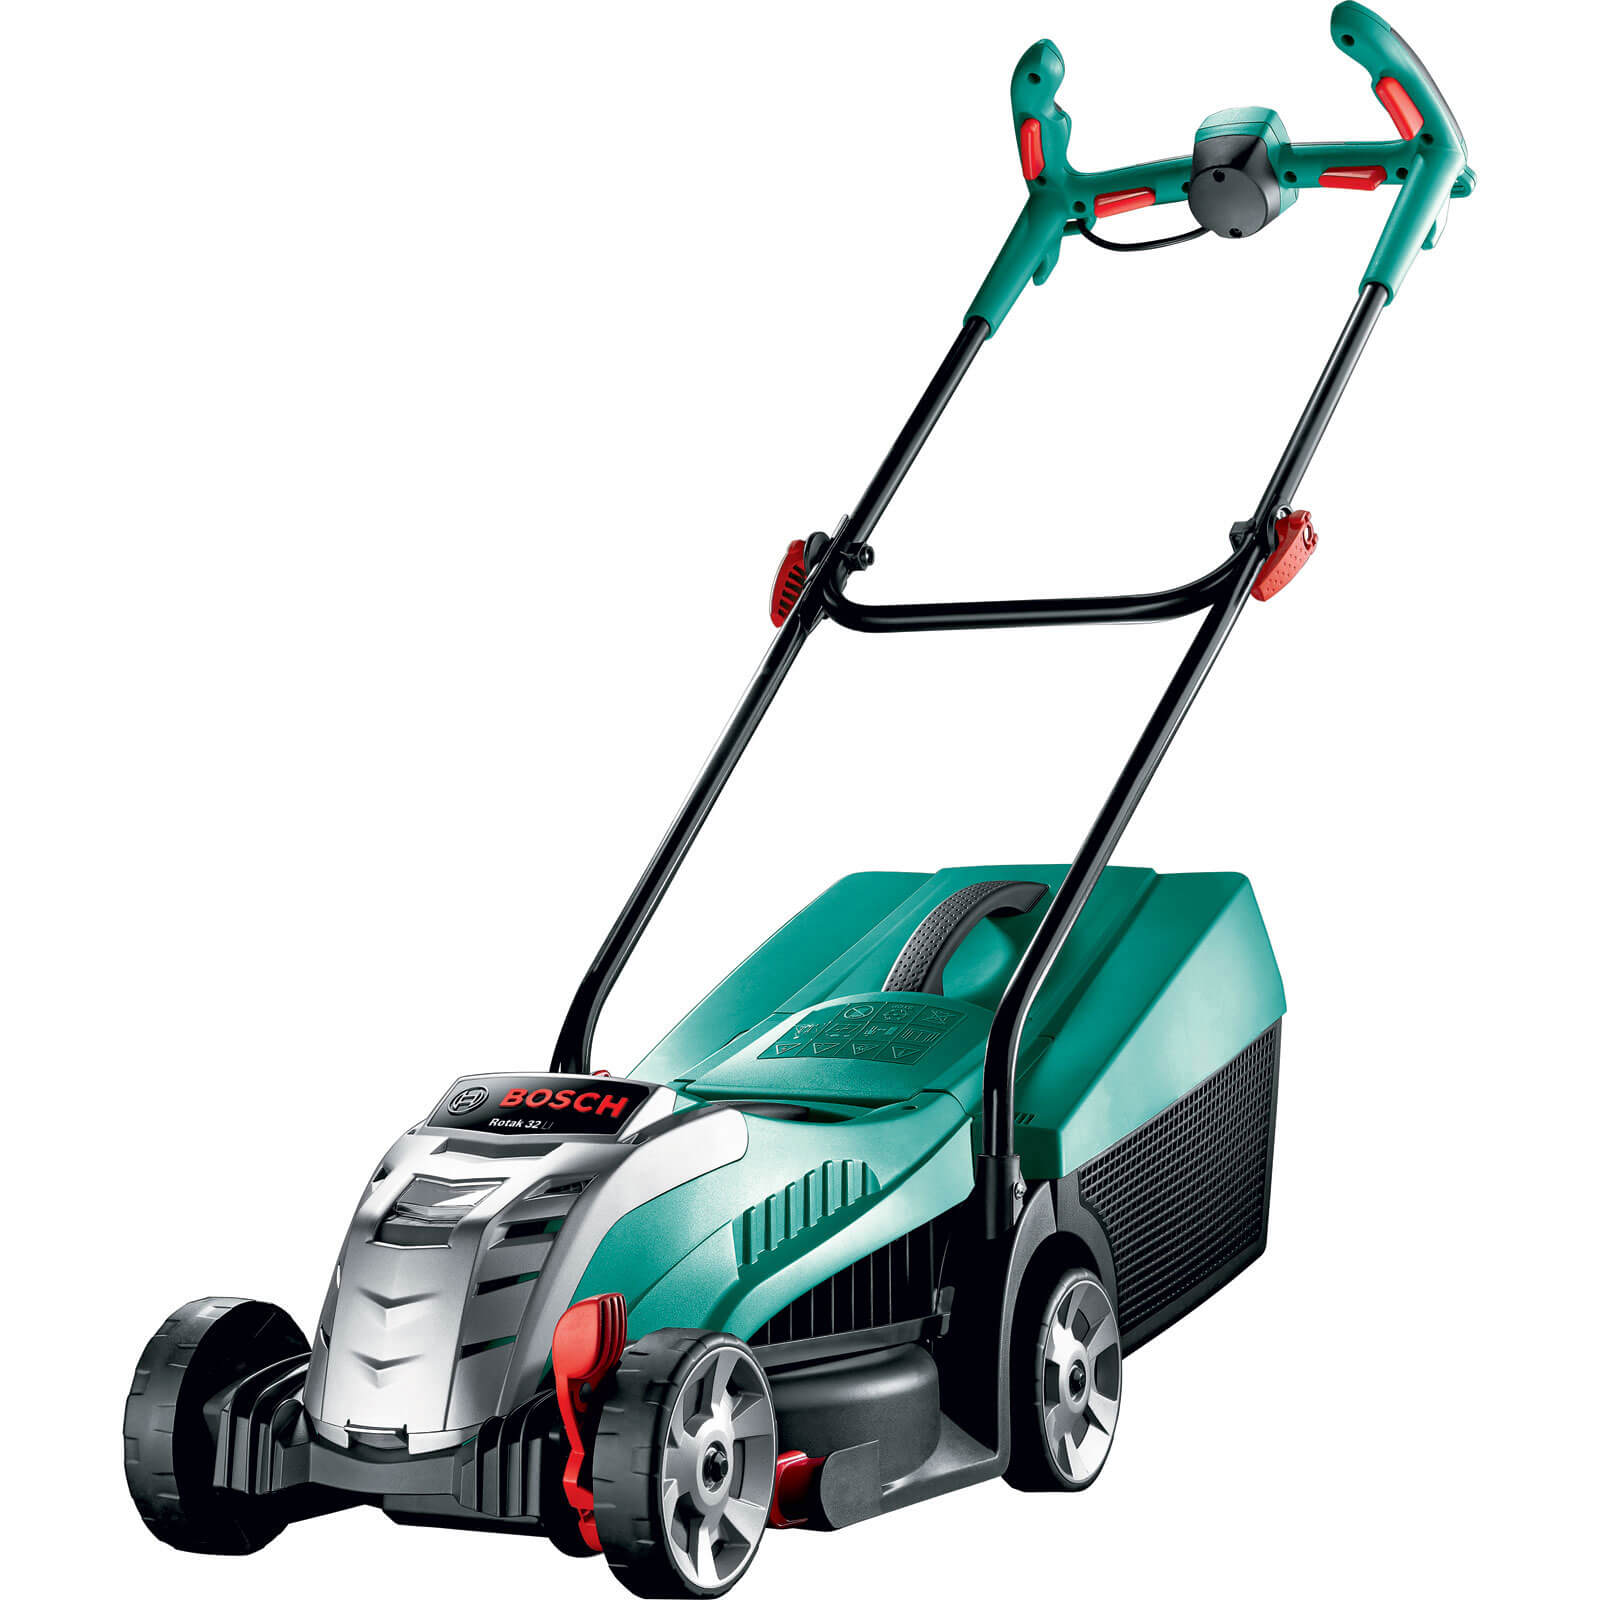 Image of Bosch ROTAK 32 LI ERGOFLEX 36v Cordless Rotary Lawnmower 320mm 1 x 2.6ah Li-ion Charger